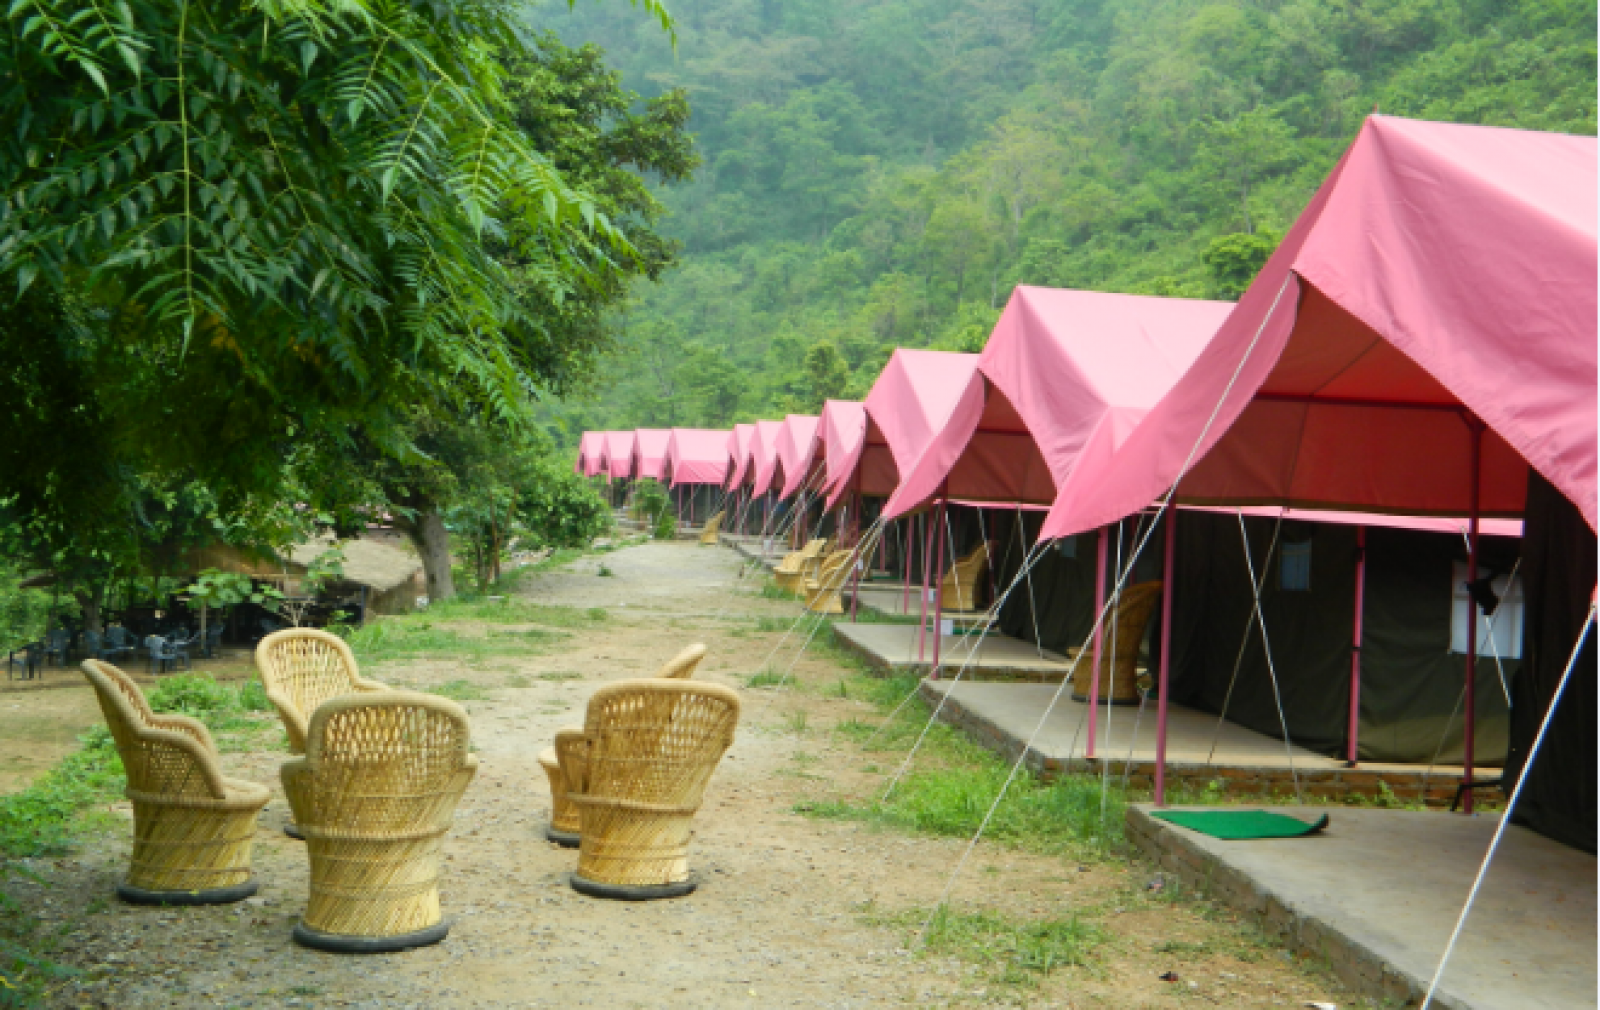 http://m.thegreatnext.com/Camping Dhanaulti Uttarakhand Adventure Travel The Great Next